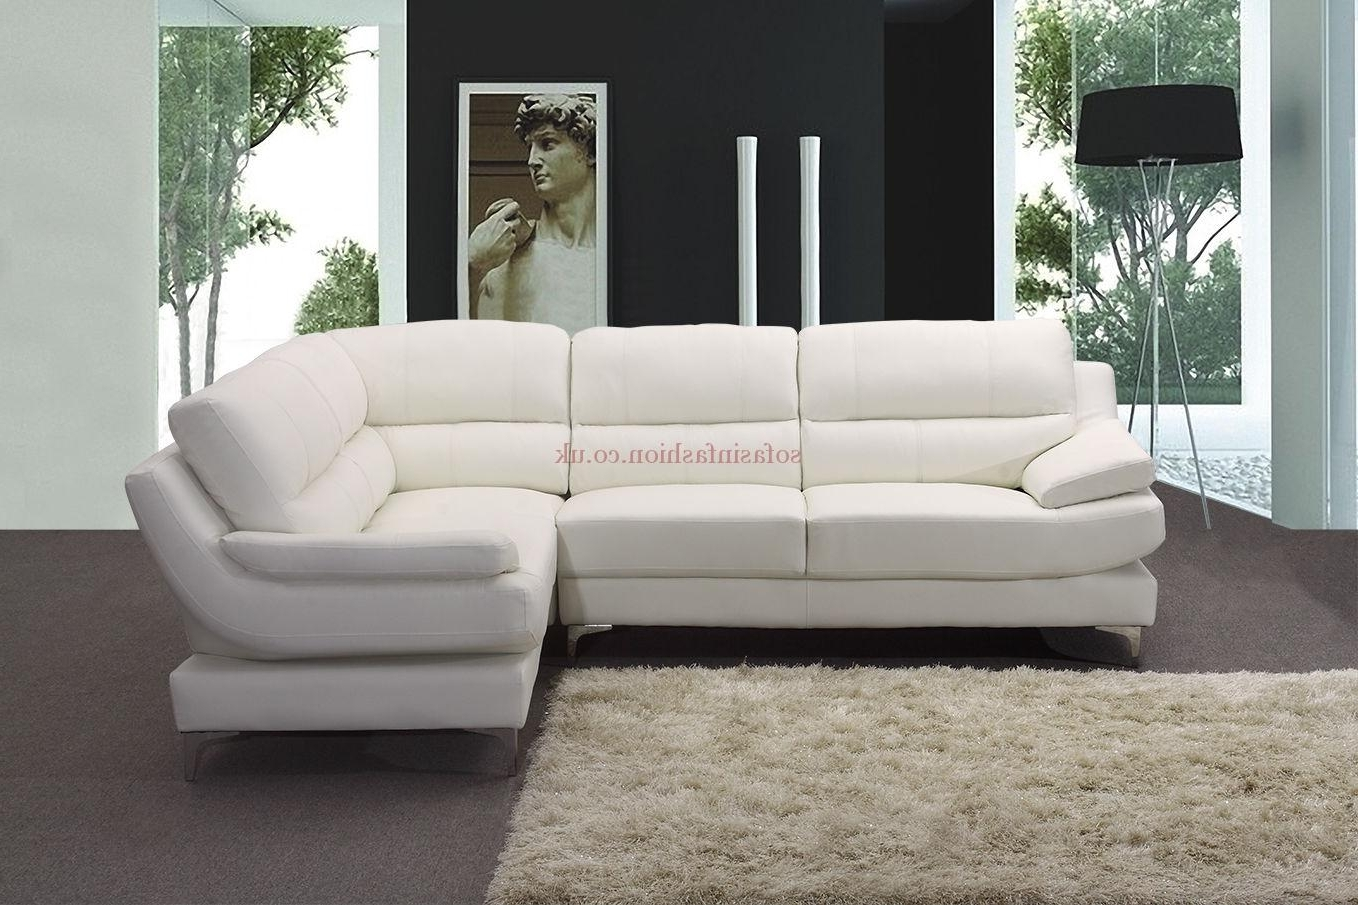 White Leather Corner Sofas With Regard To Well Known Corner Sofa Leather With Corner Sofa White Leather Monza Isofas (View 2 of 20)